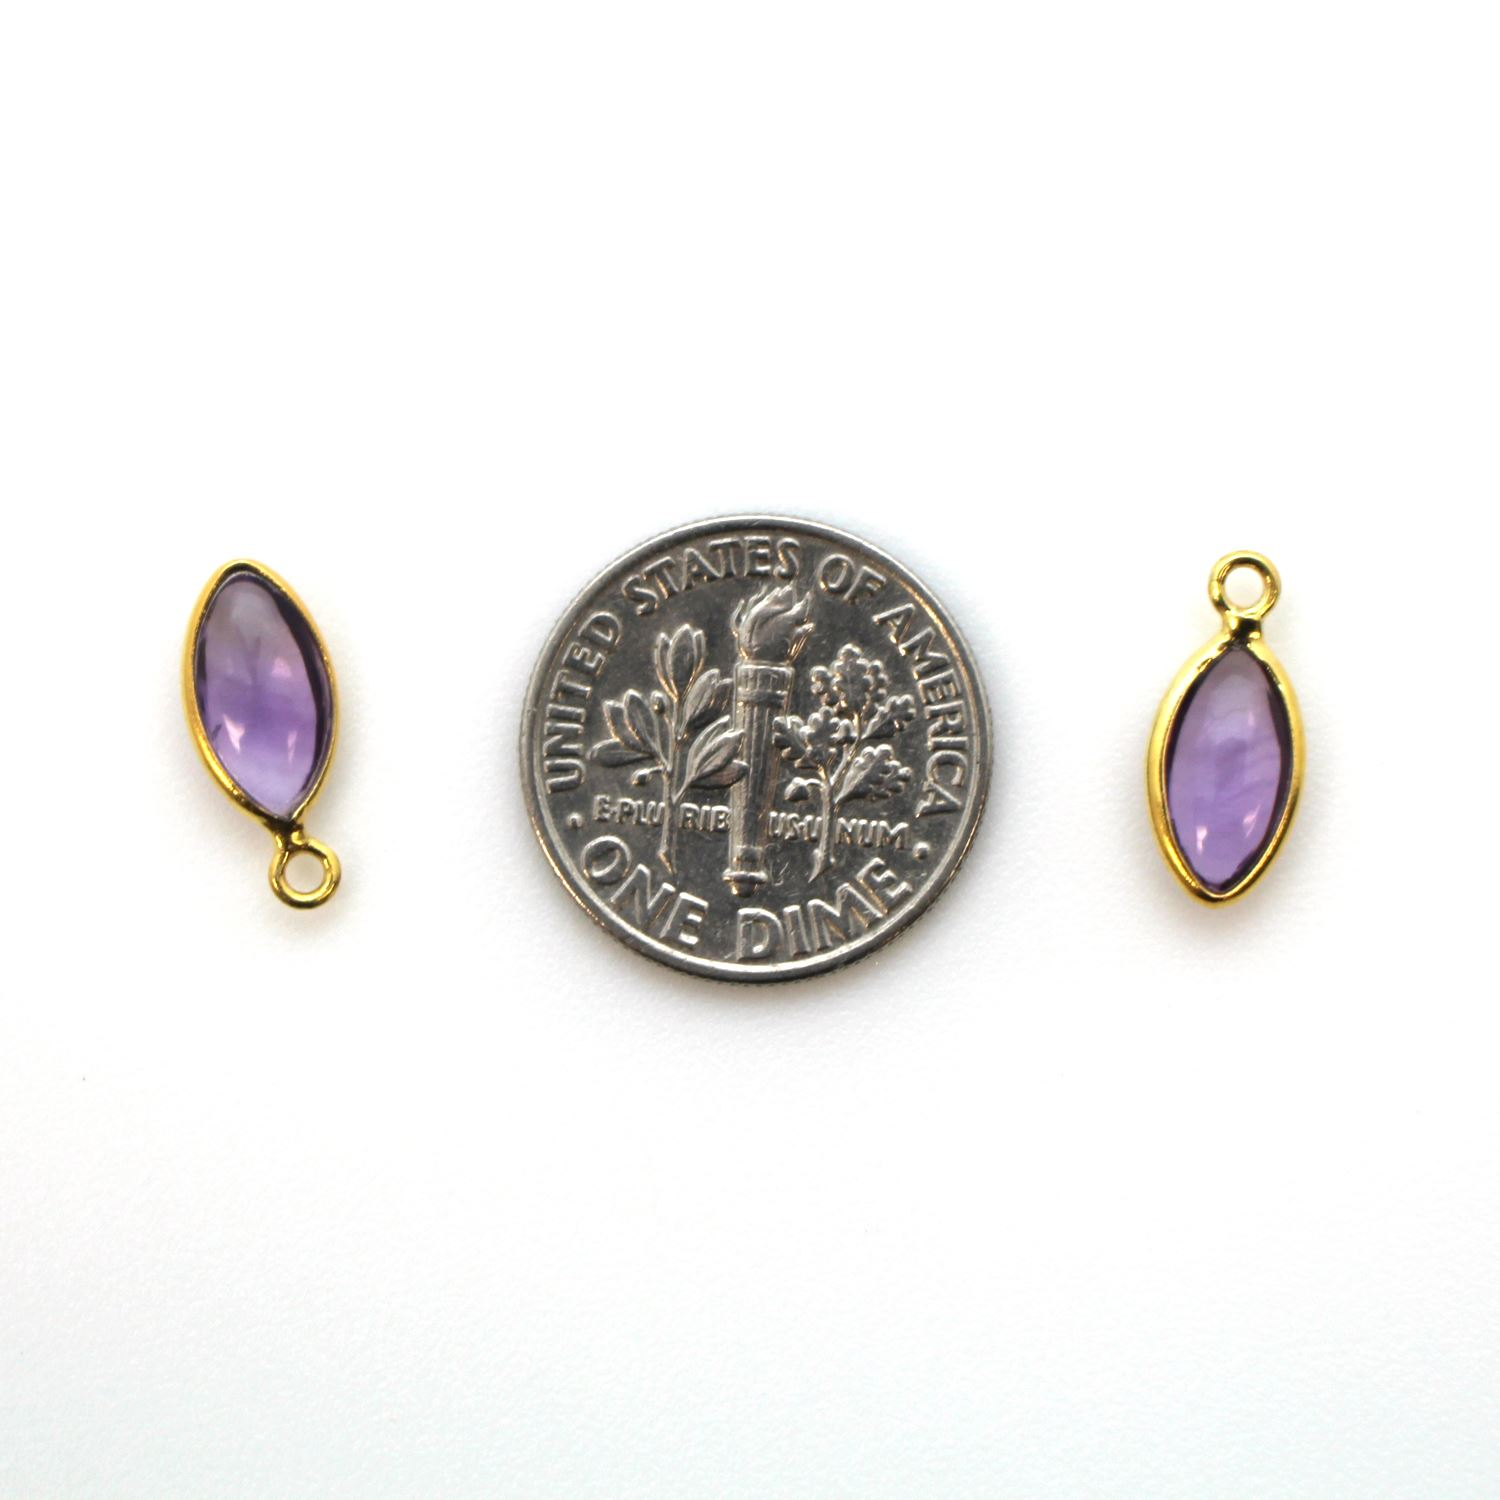 Bezel Charm Pendant - Gold Plated Sterling Silver Charm - Natural Amethyst - Tiny Marquise Shape -6x13mm